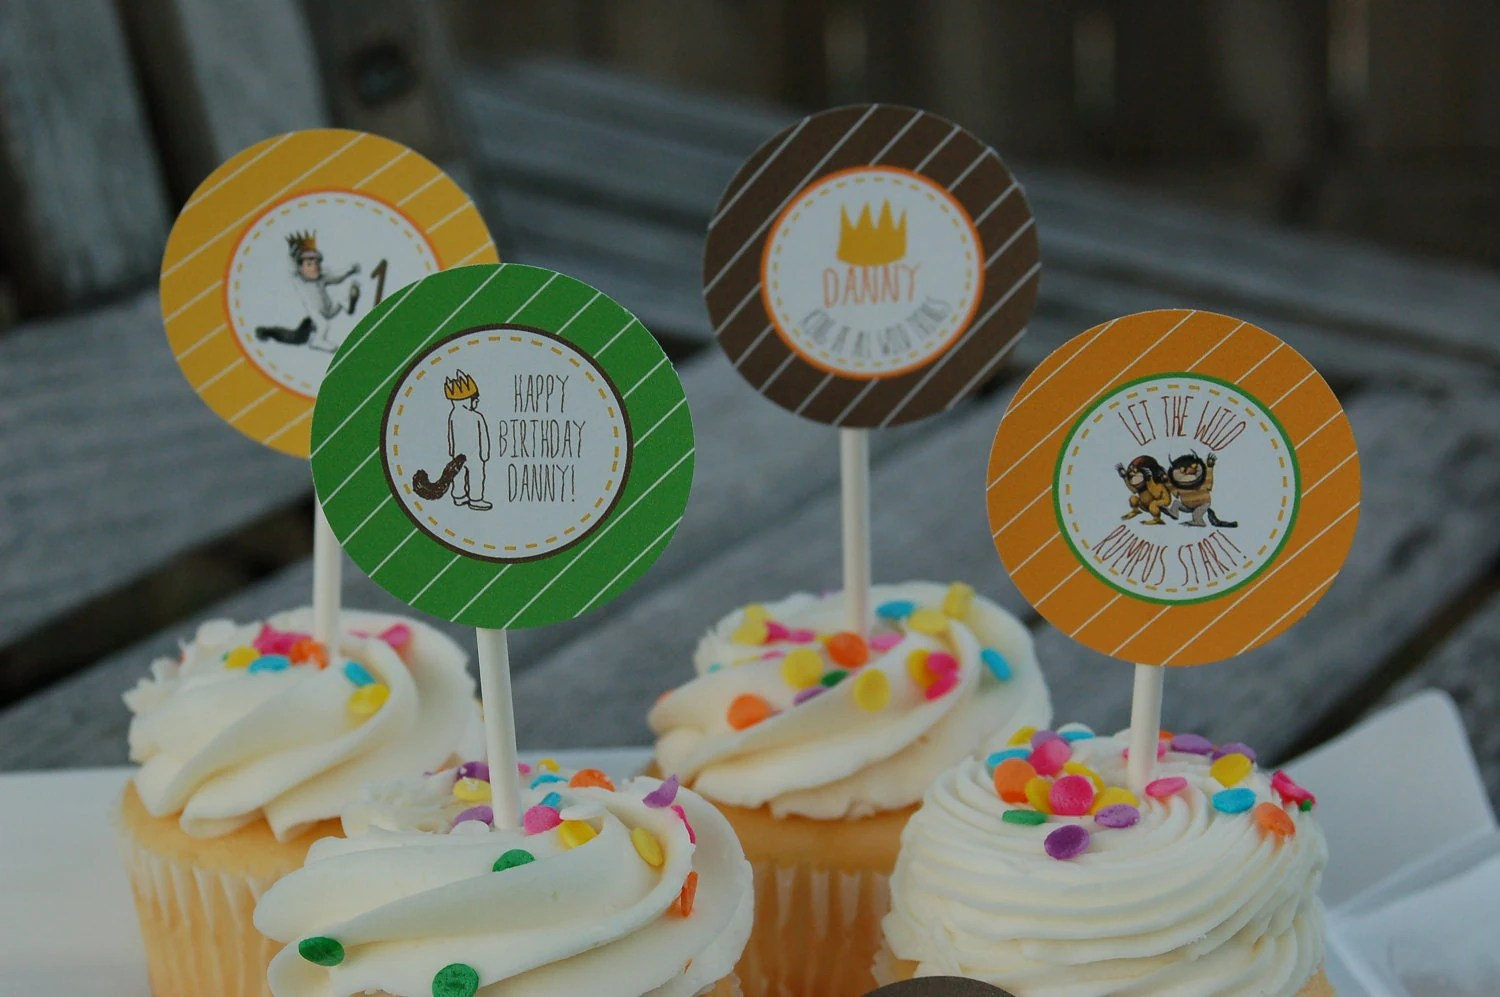 Where The Wild Things Are Cupcake Toppers/Tags By